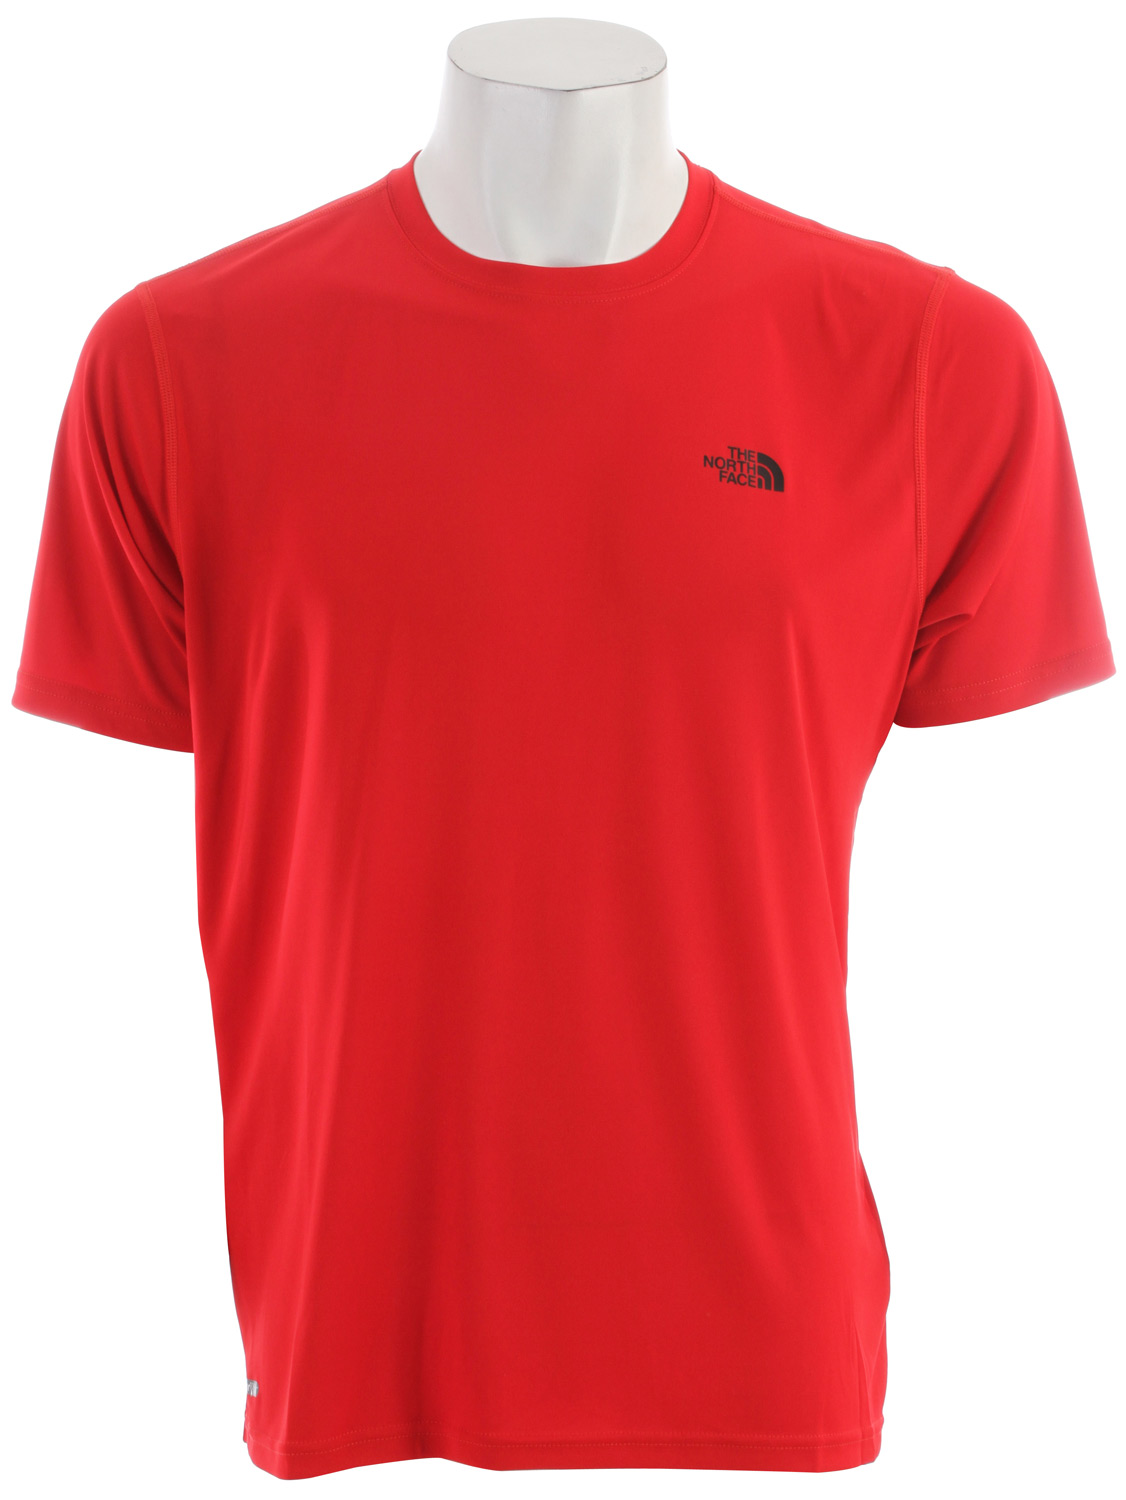 "A great base or top layer in and out of the gym. Key Features of the The North Face Velocitee Crew T-Shirt: Soft, ultralight fabric Pop logos Avg weight: 3.17 oz Center back: 27.75"" Fabric: 93 g/m2 (2.7 oz/yd) 100% polyester Velocitee interlock knit - $13.95"